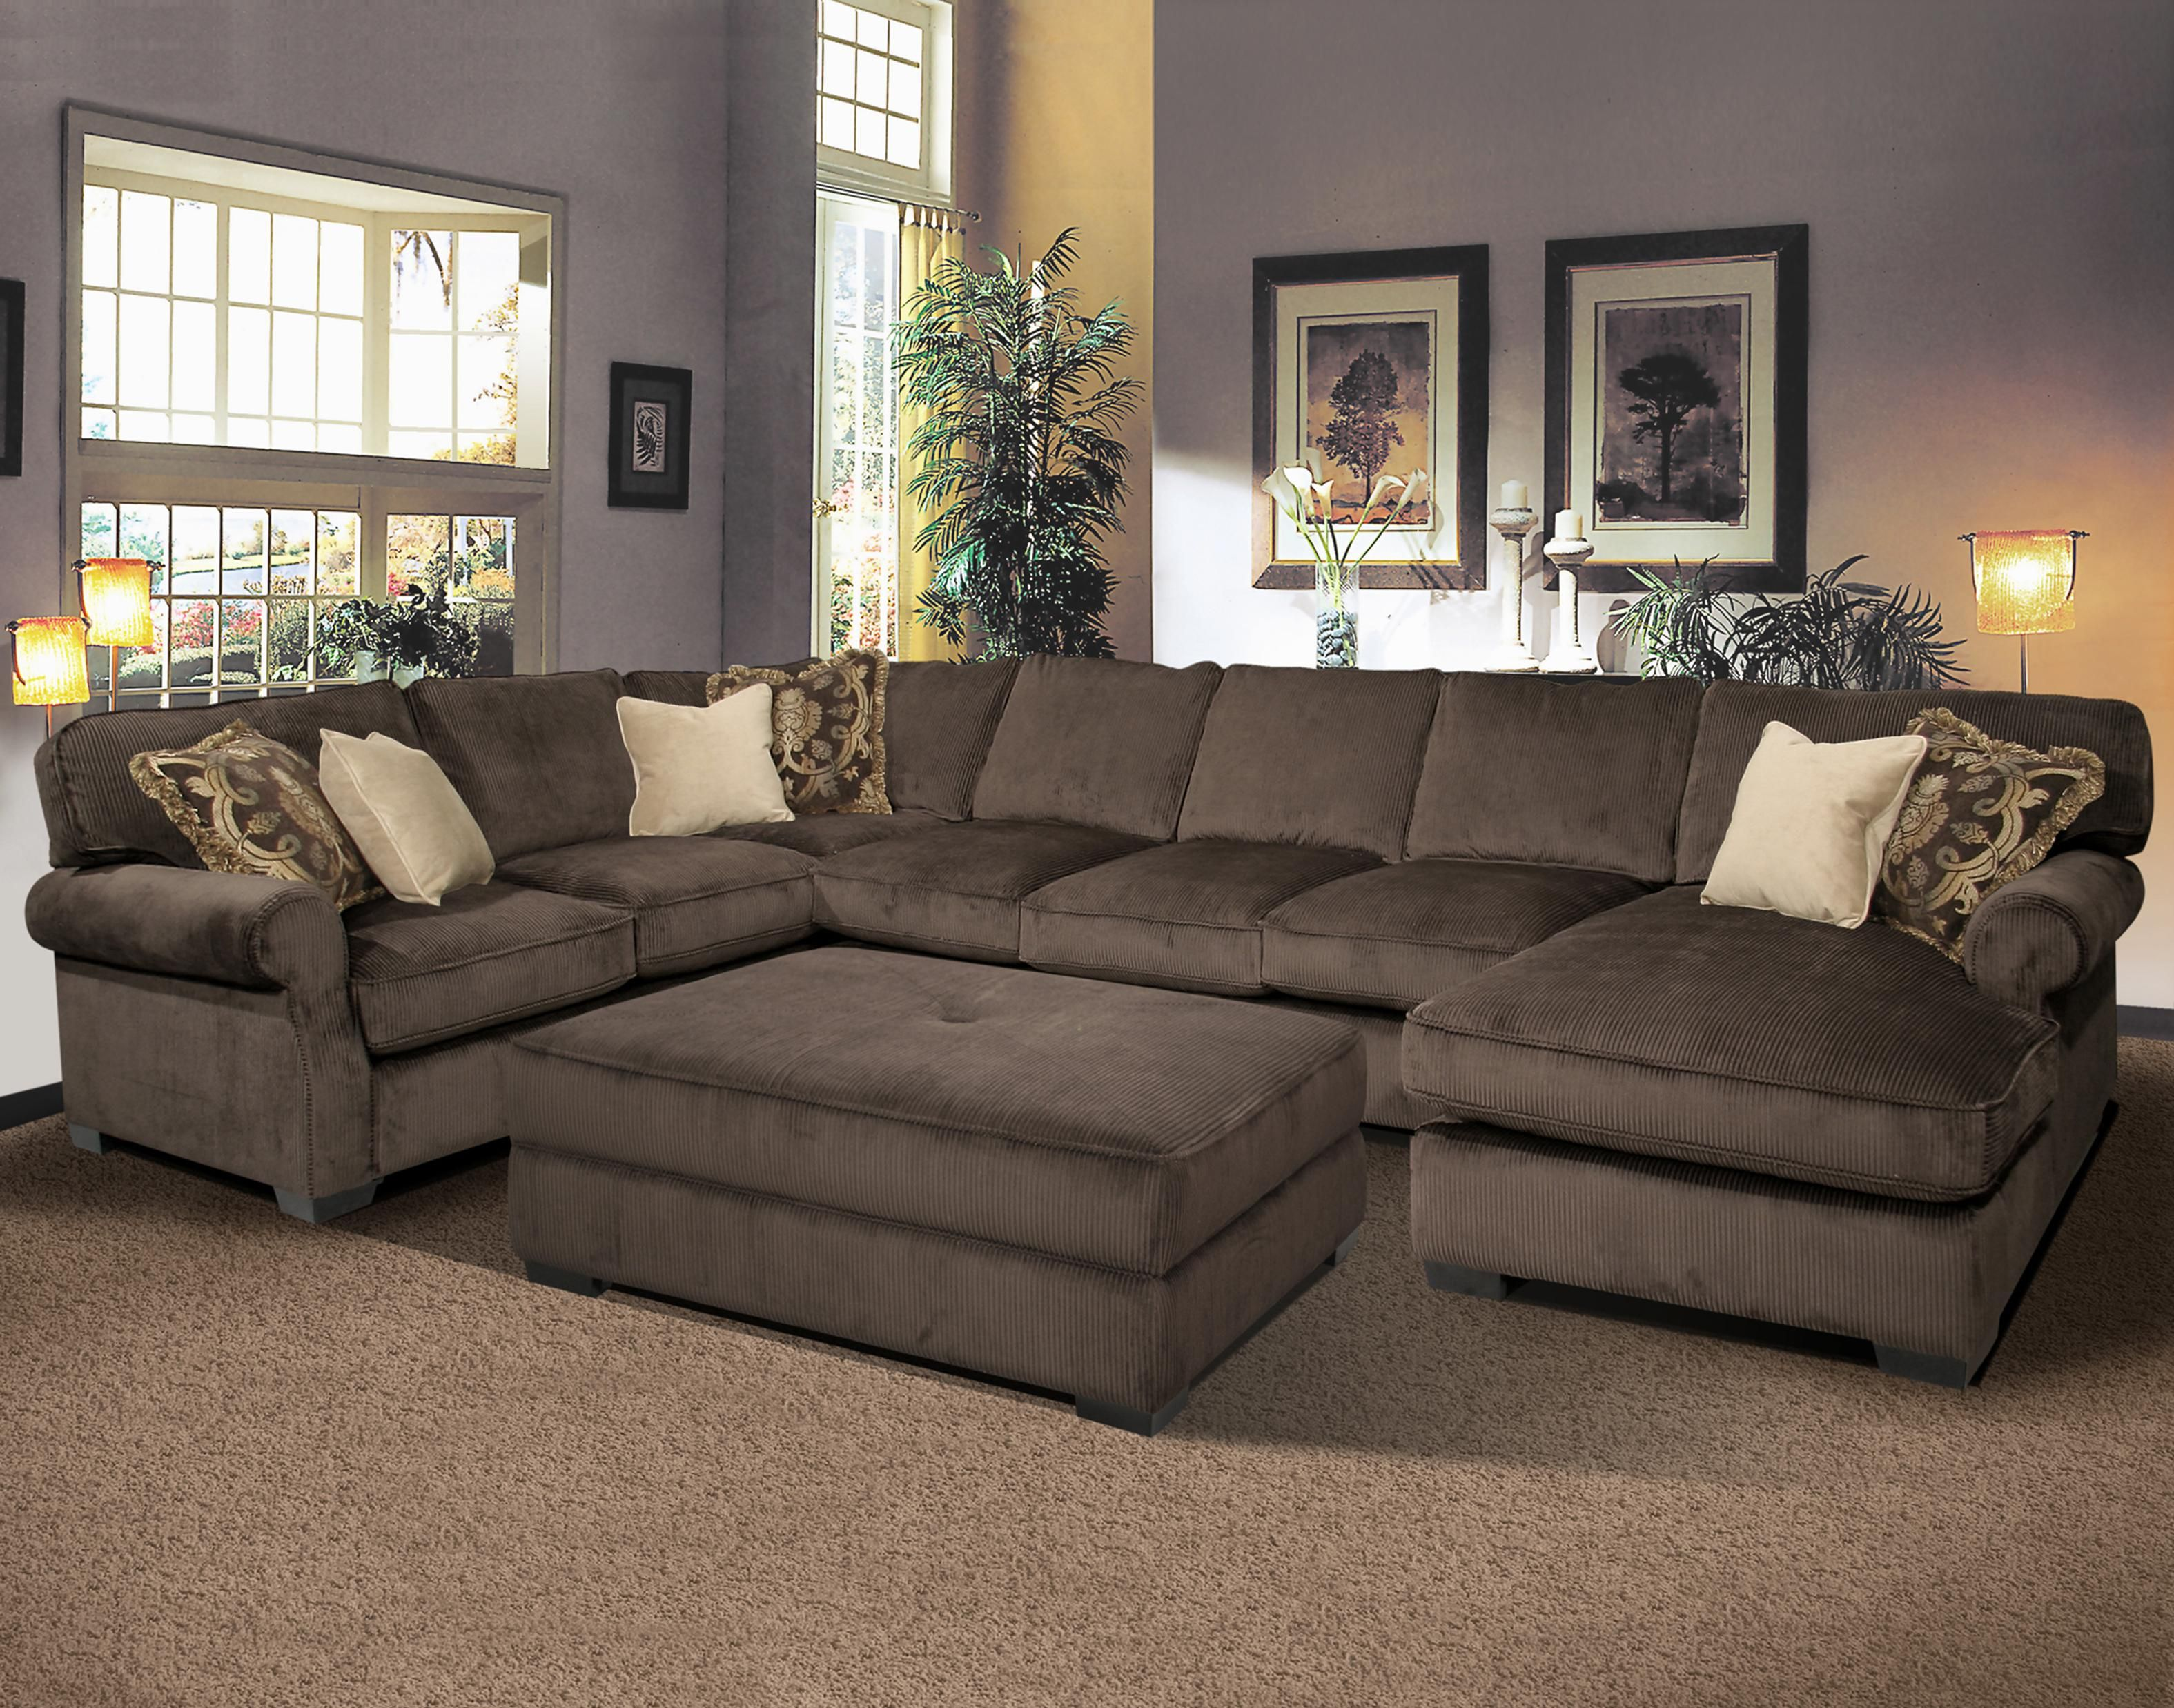 Large Sectional Couch For Big And Comfy Grand Island Large Seat Sectional Sofa With Right Side Chaise By Fairmont Seating Ruby Gordon Home Furnishings Rochester